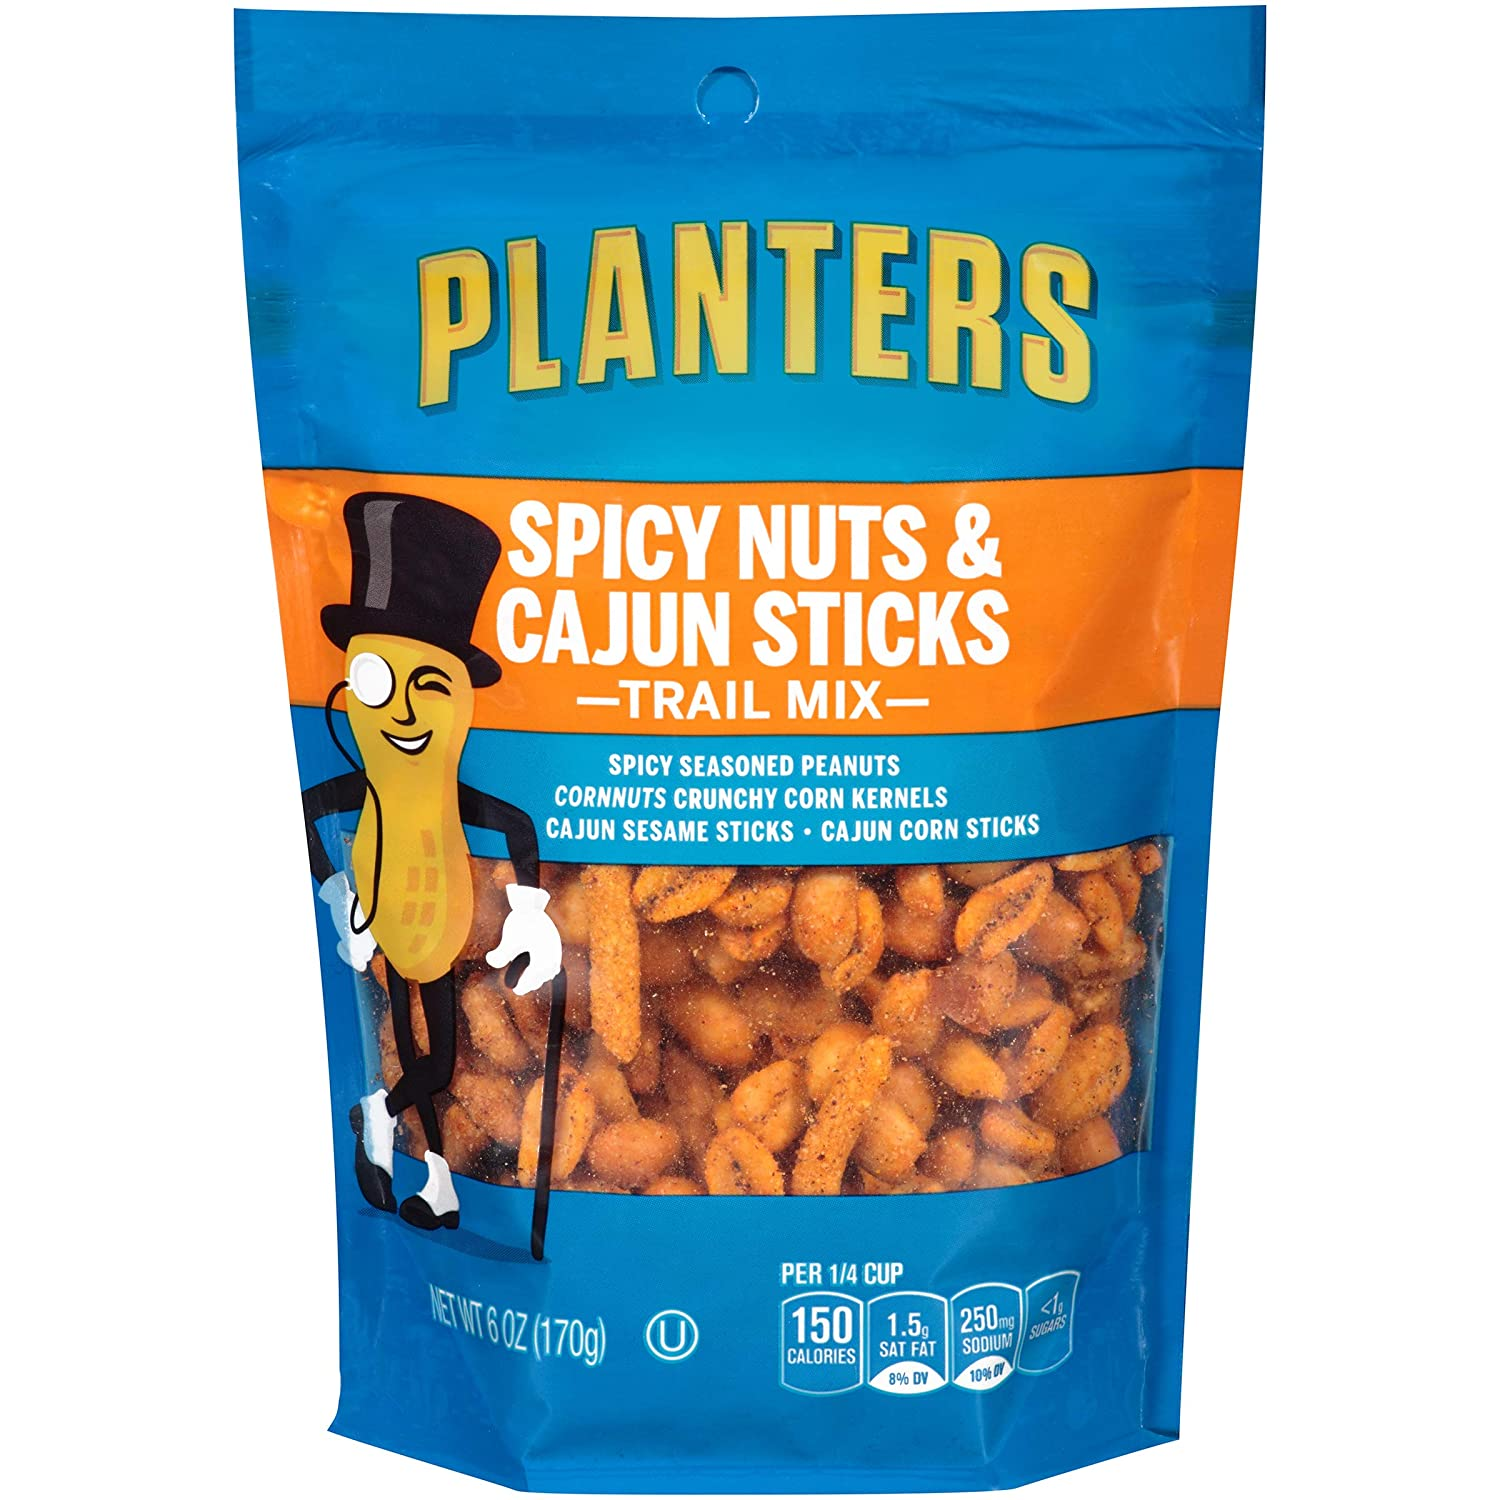 Planters Spicy Nuts & Cajun Sticks Trail Mix (6oz Bags, Pack of 6)